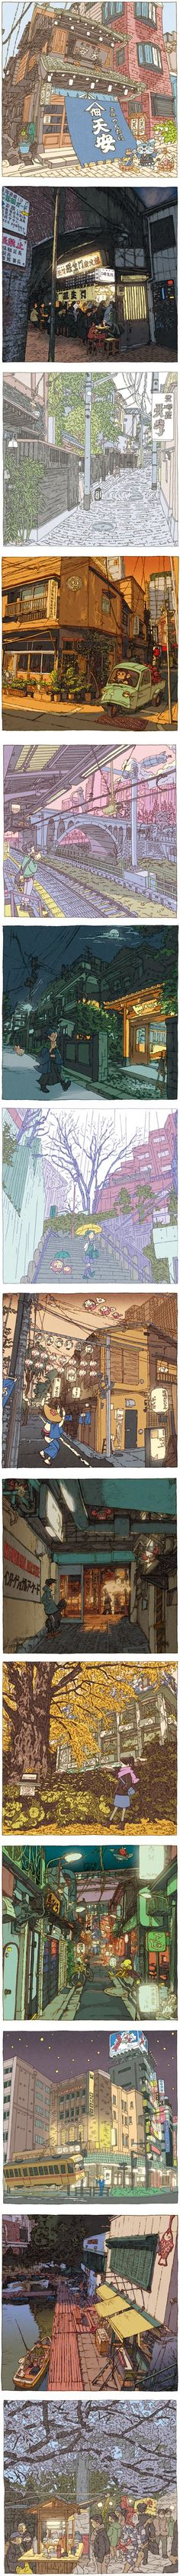 Shinji Tsuchimochi's 100 Views of Tokyo | Lines and Colors :: a blog about drawing, painting, illustration, comics, concept art and other visual arts